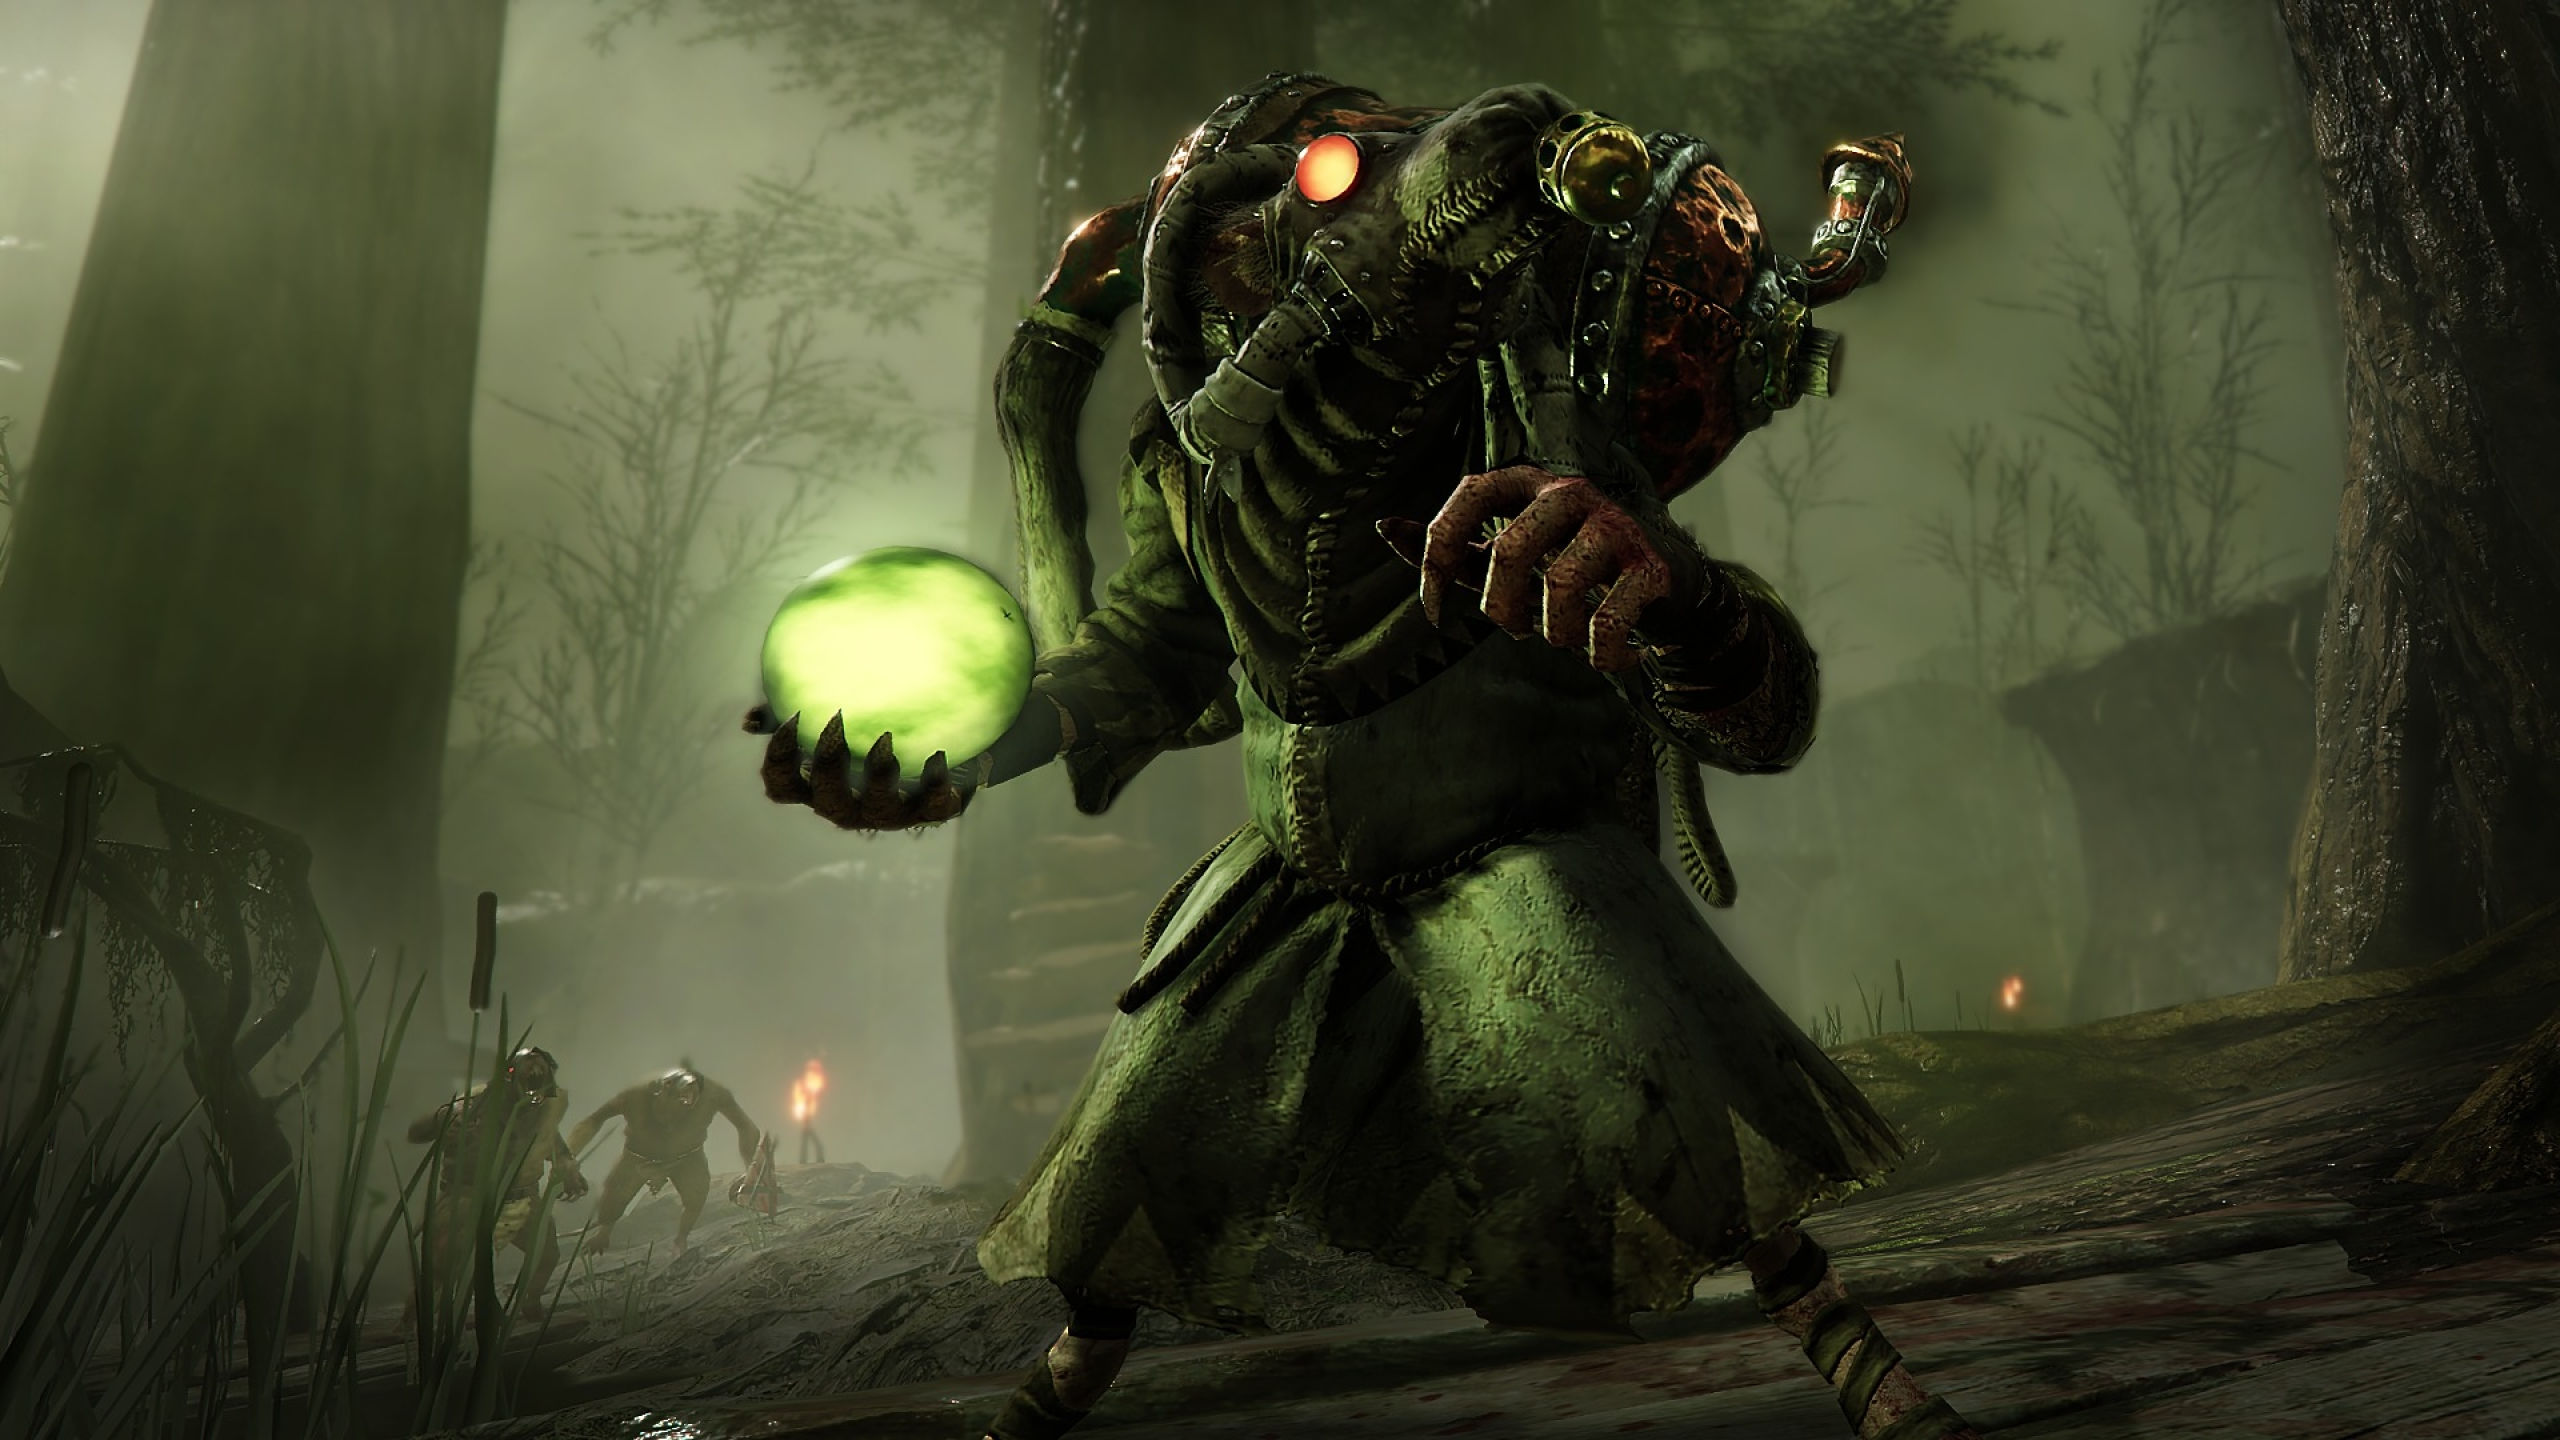 2560x1440 Warhammer Vermintide 2 Video Game 1440p Resolution Wallpaper Hd Games 4k Wallpapers Images Photos And Background